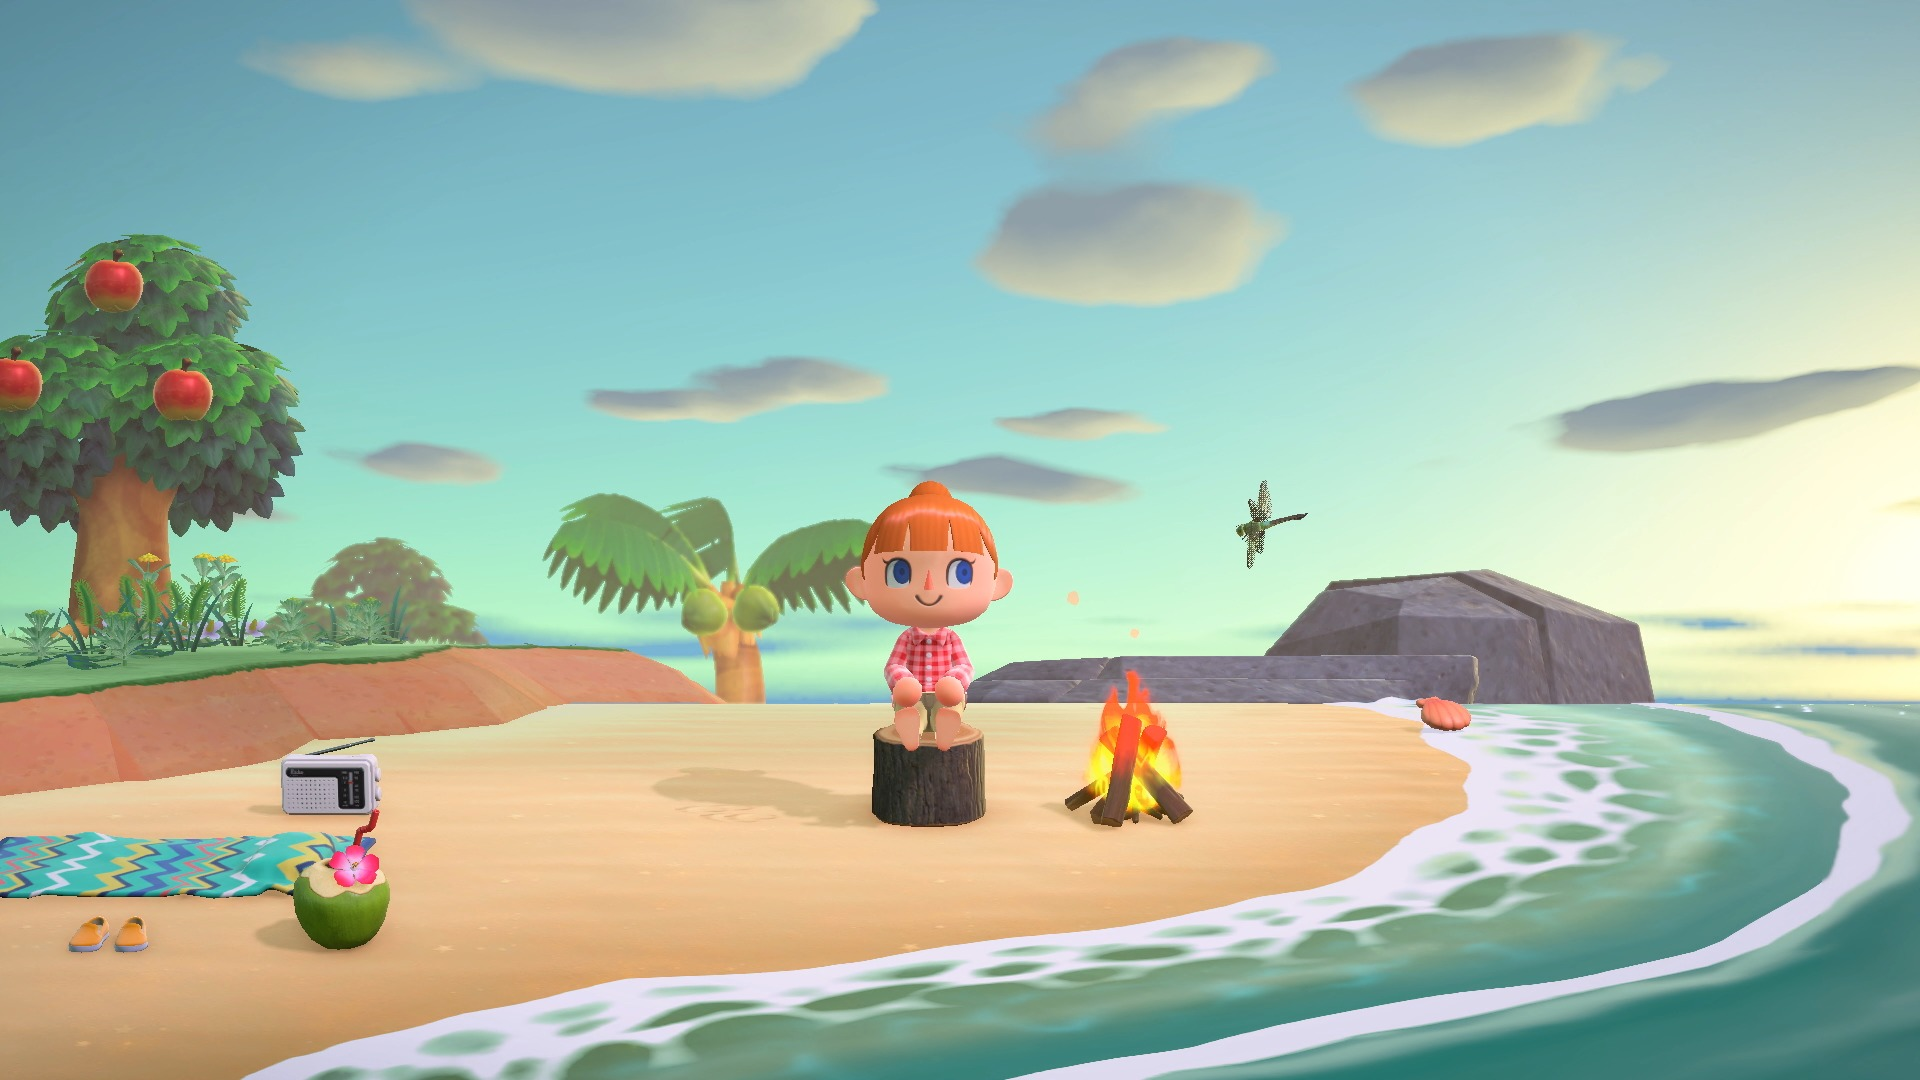 Animal Crossing: New Horizons amiibo support and functionality detailed